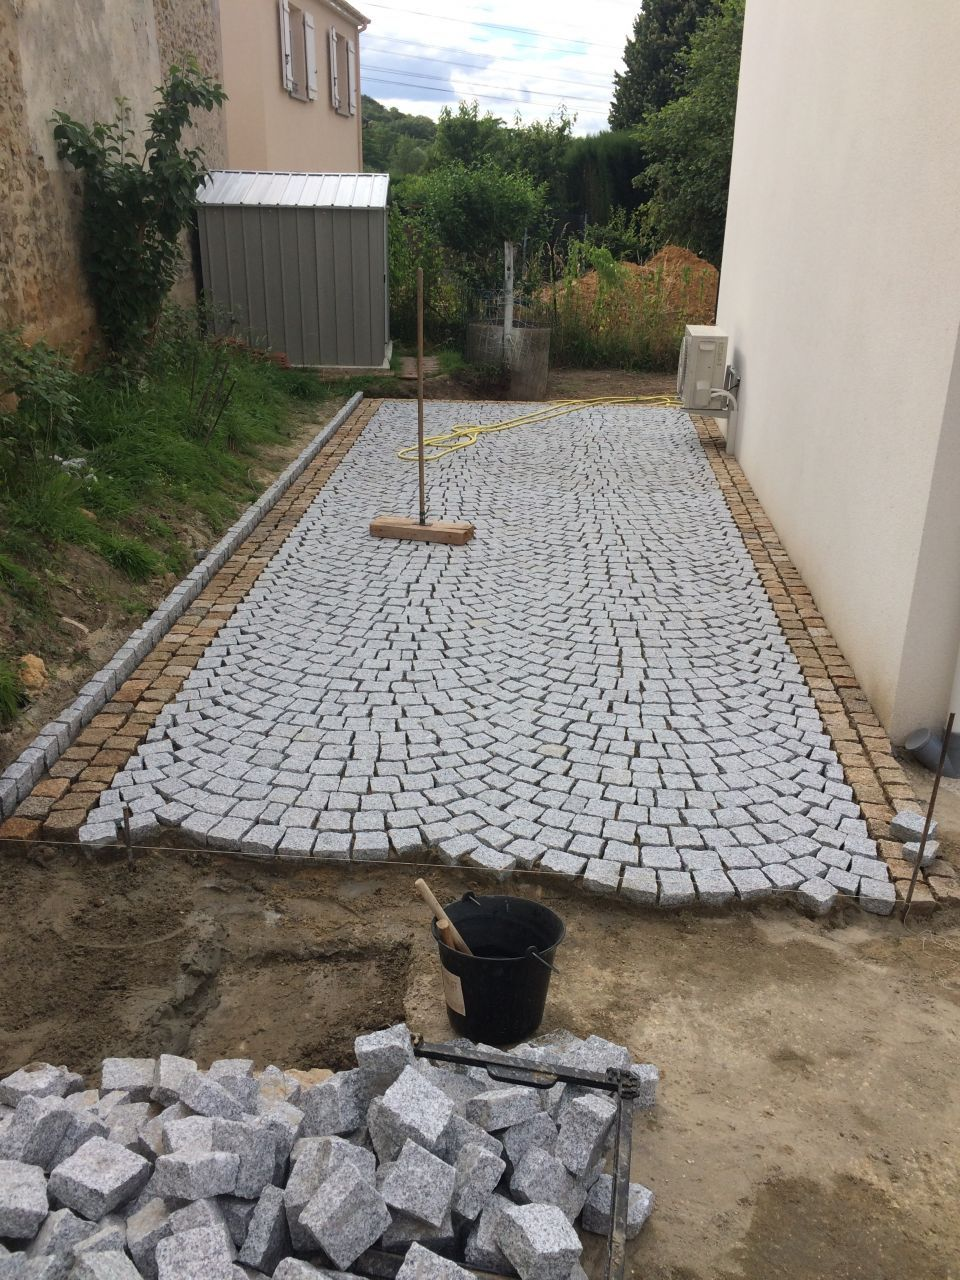 Pose de pav s en granit du portugal diy pinterest - Plaque a coller sur carrelage ...